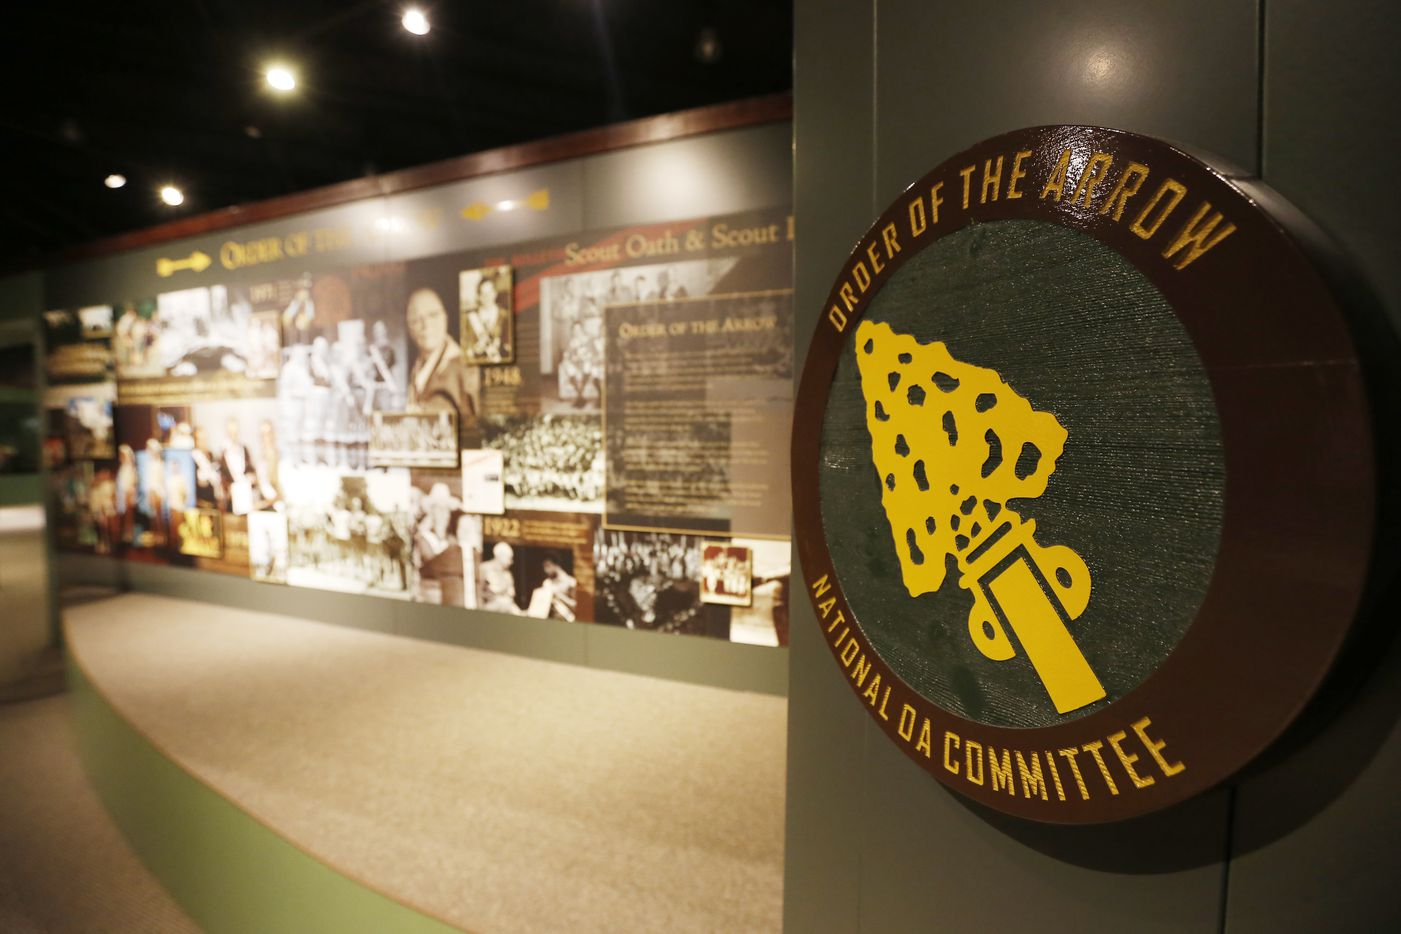 The Order of the Arrow exhibit at theNational Scouting Museum. (2015 File Photo/Brandon Wade)